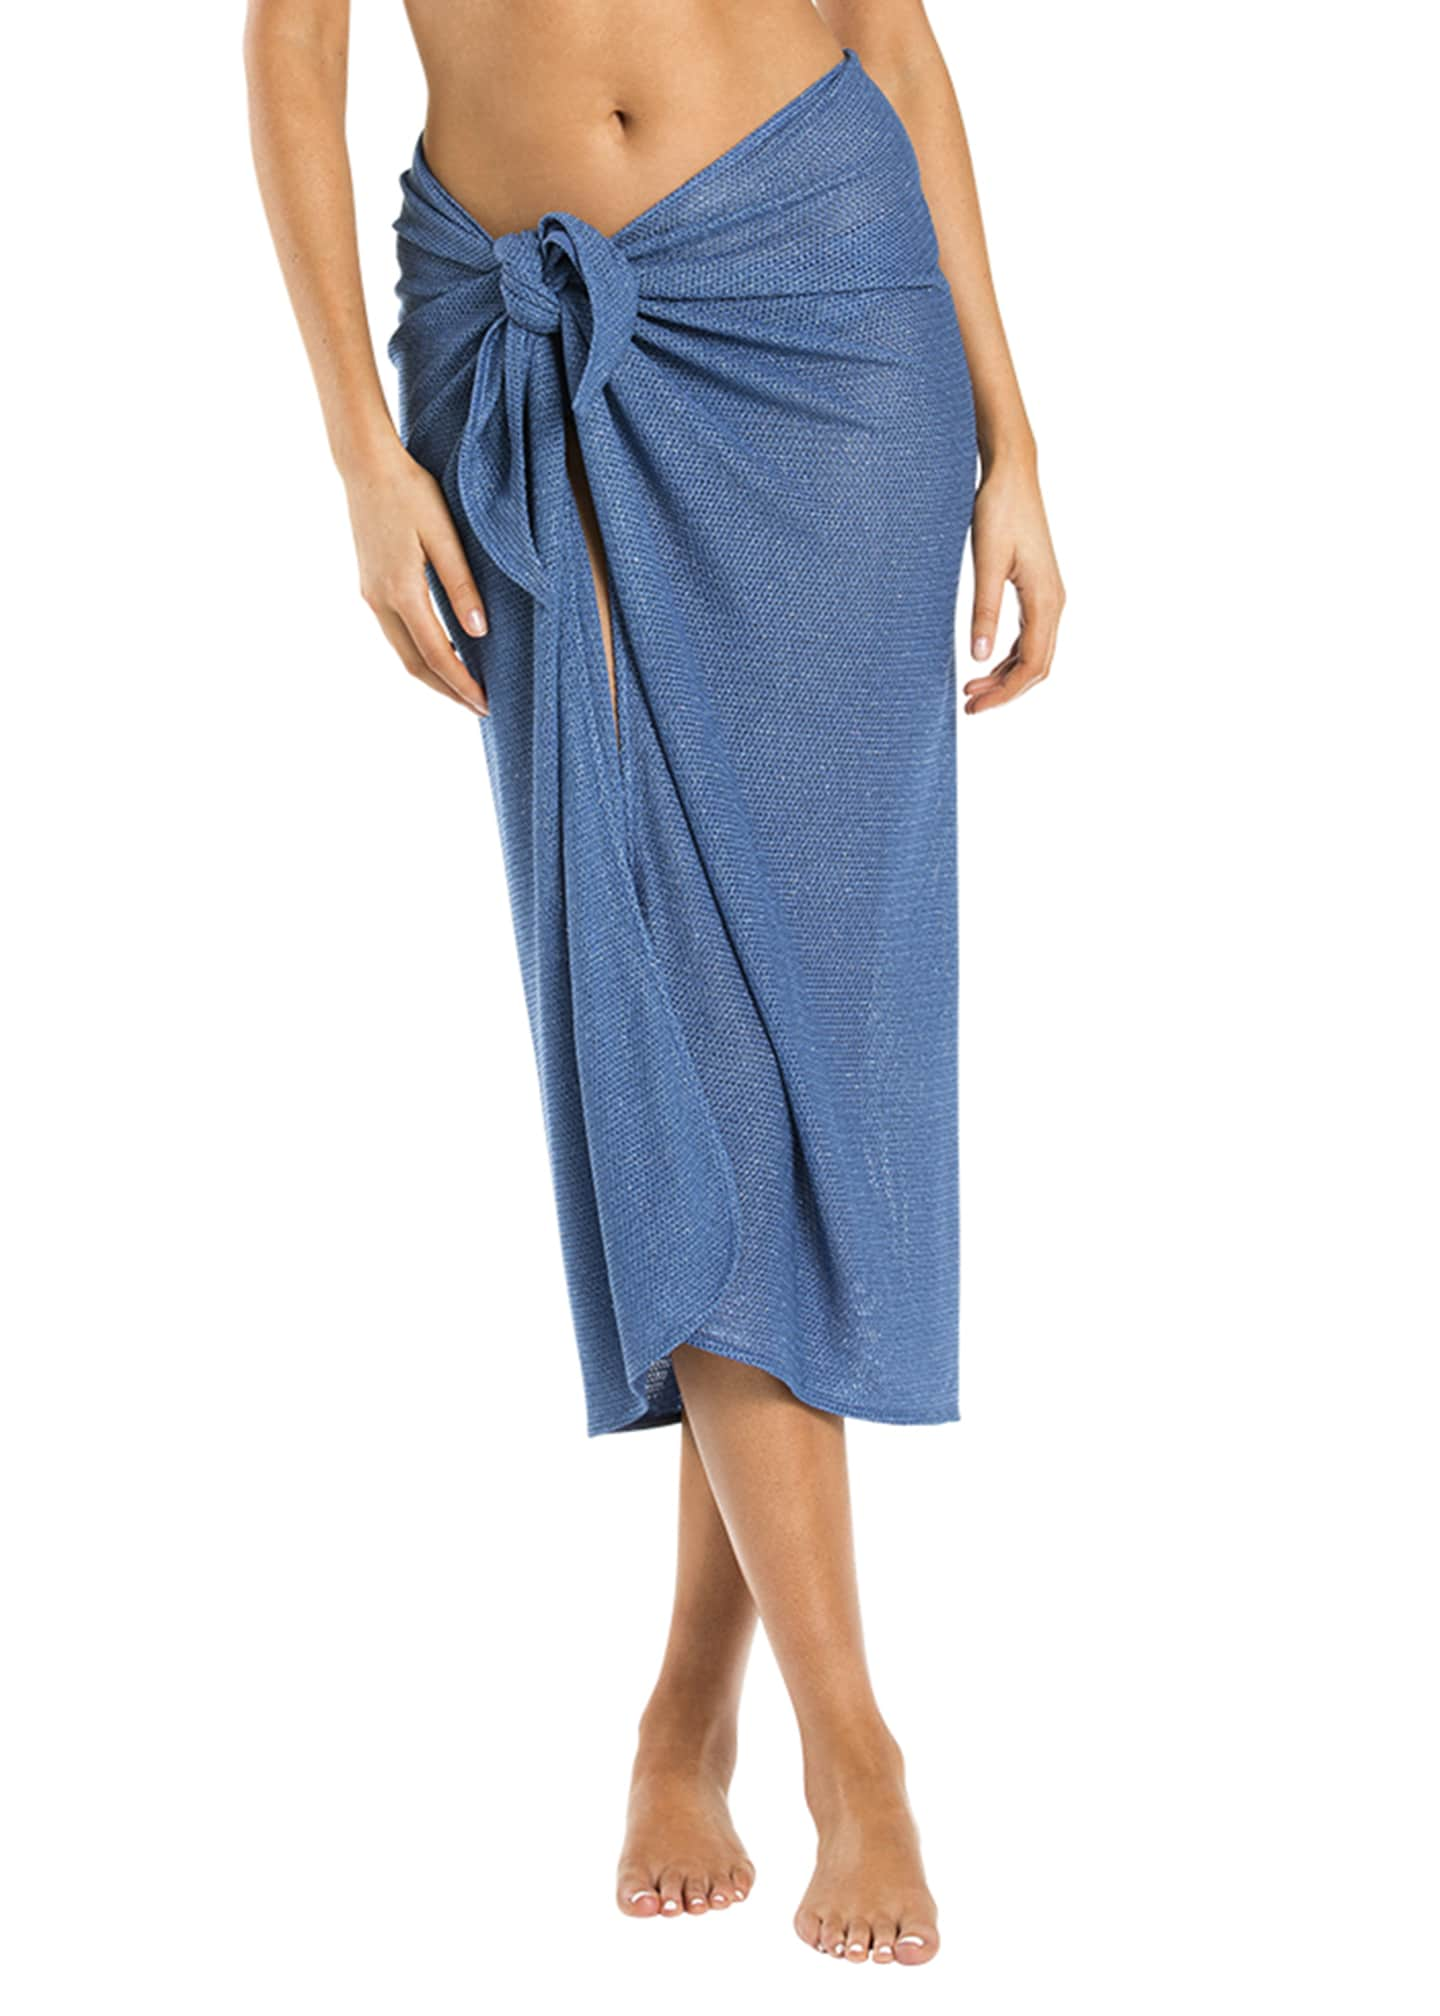 JETS by Jessika Allen Metallic Sarong Coverup